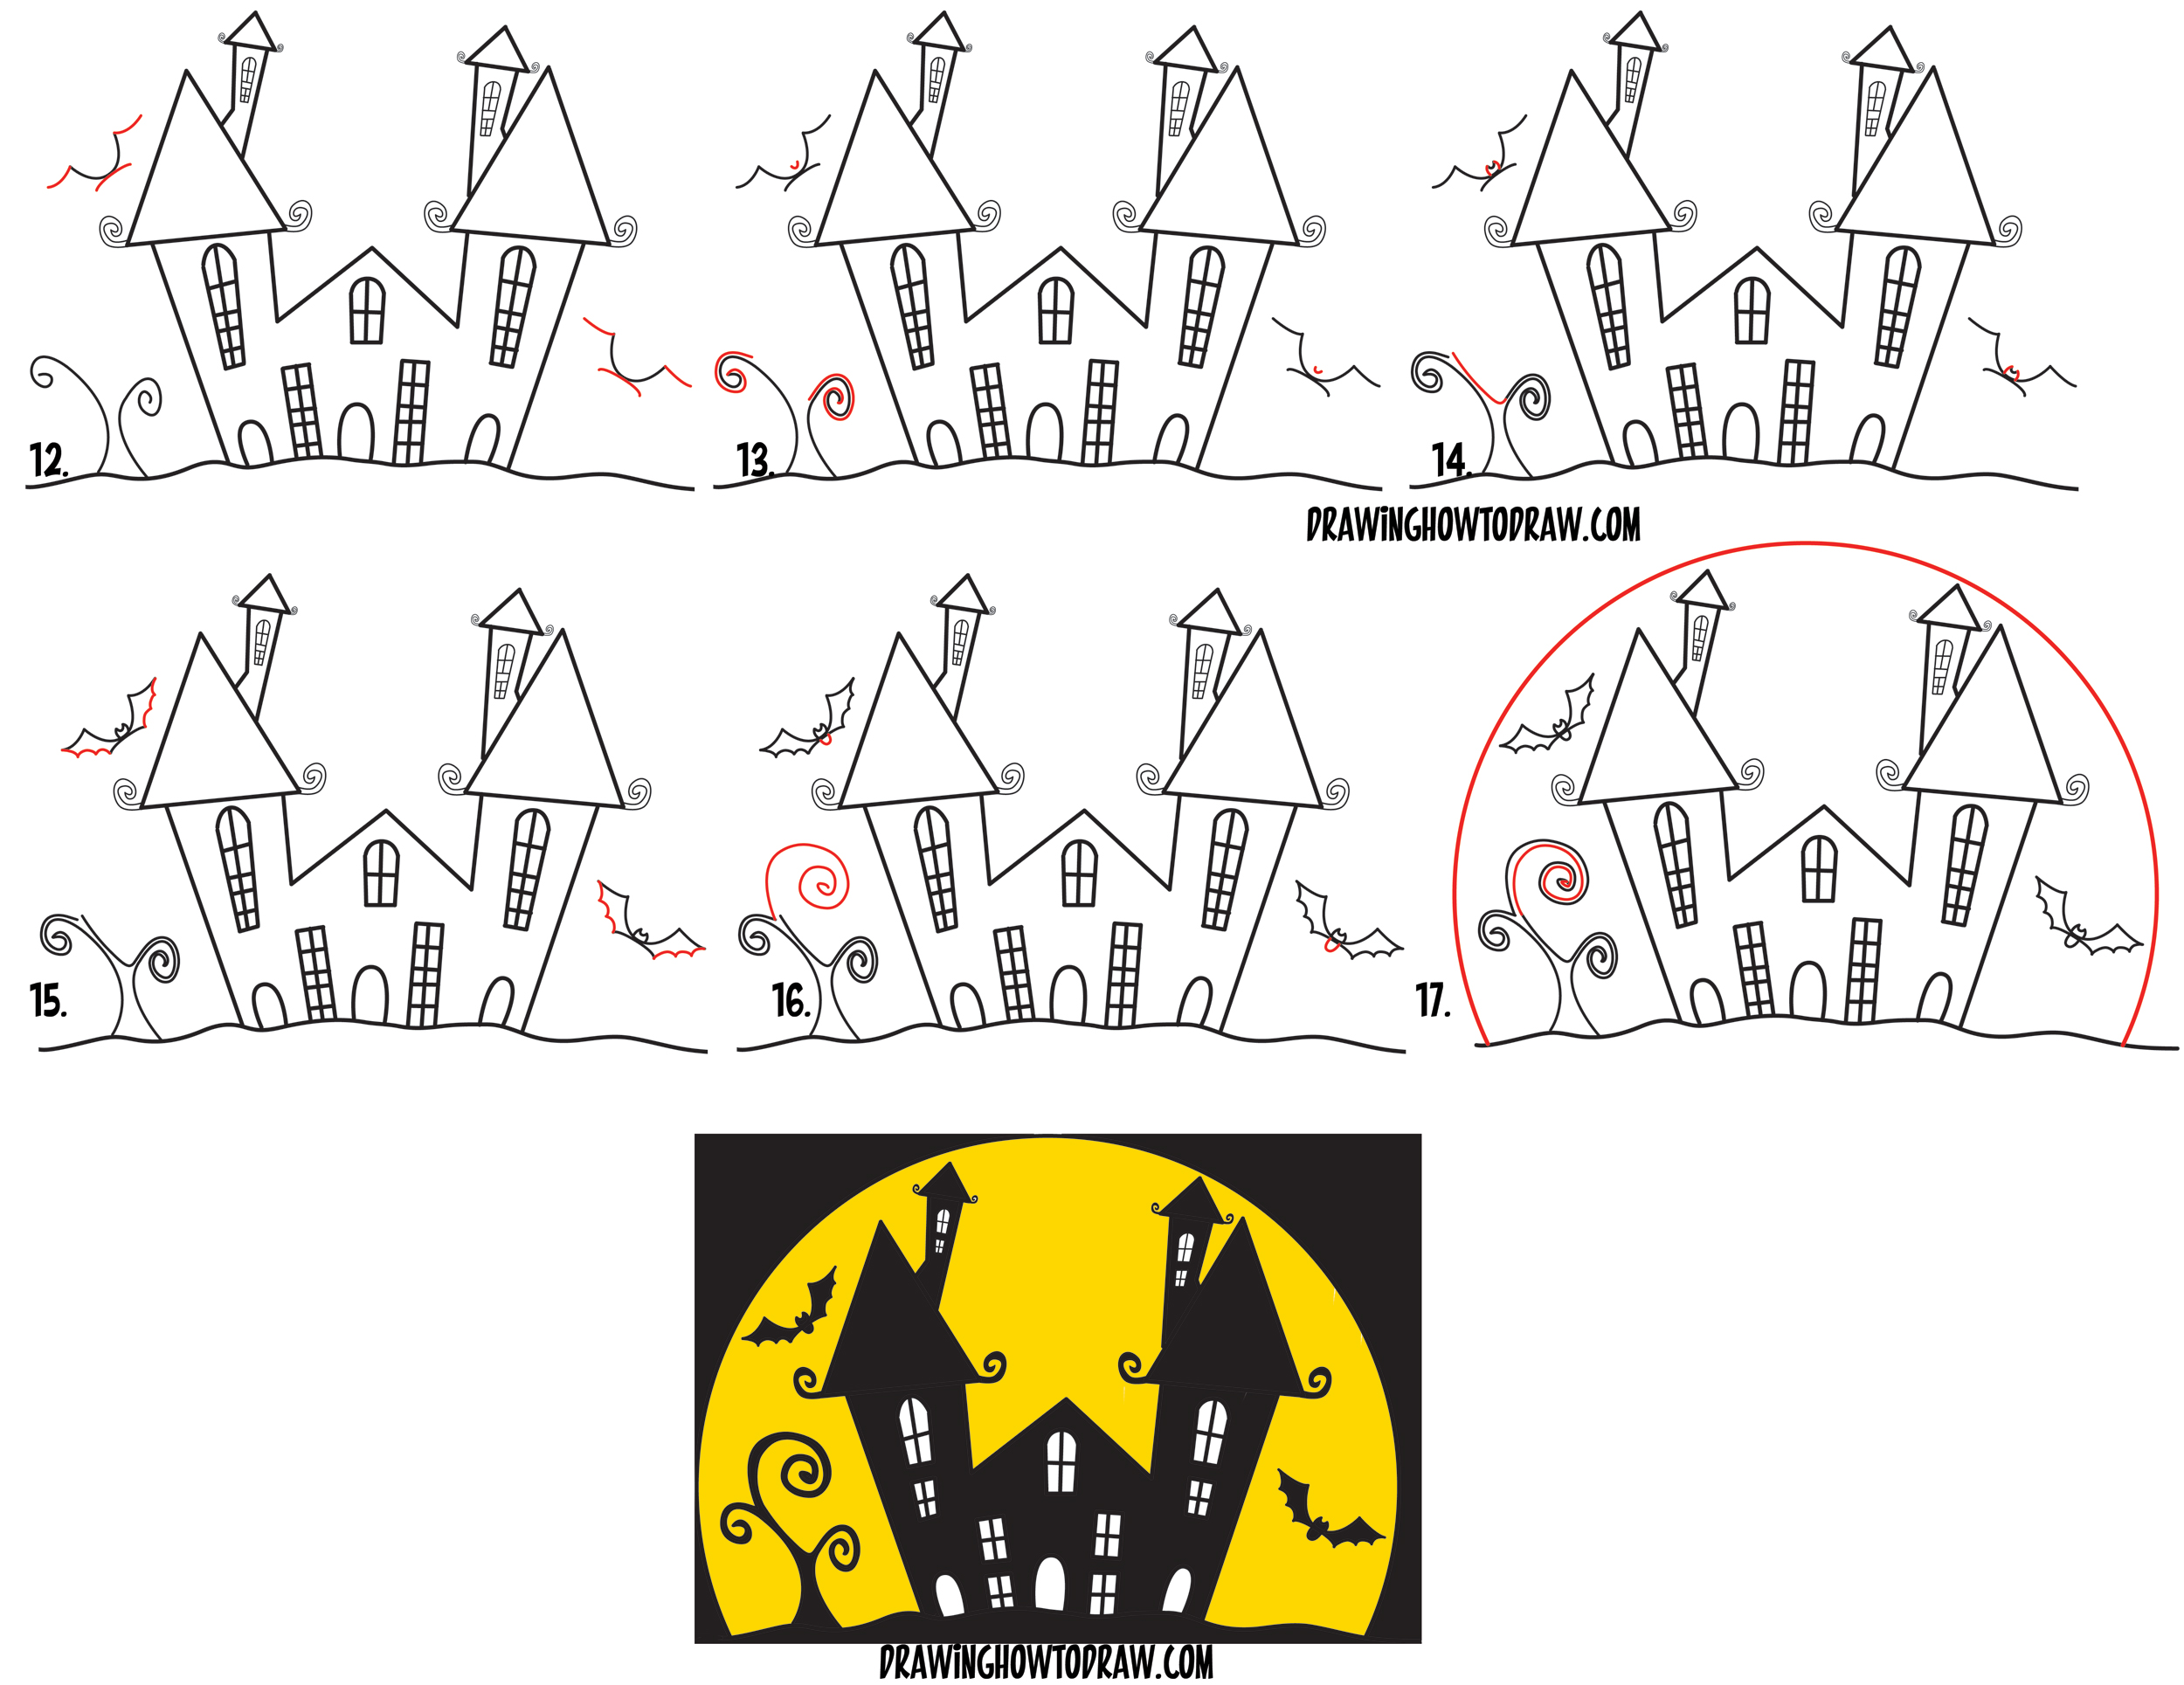 Learn How to Draw a Cartoon Haunted House Step by Step in Silhouette with Bats (from the Letter W) - Simple Steps for Kids for Halloween